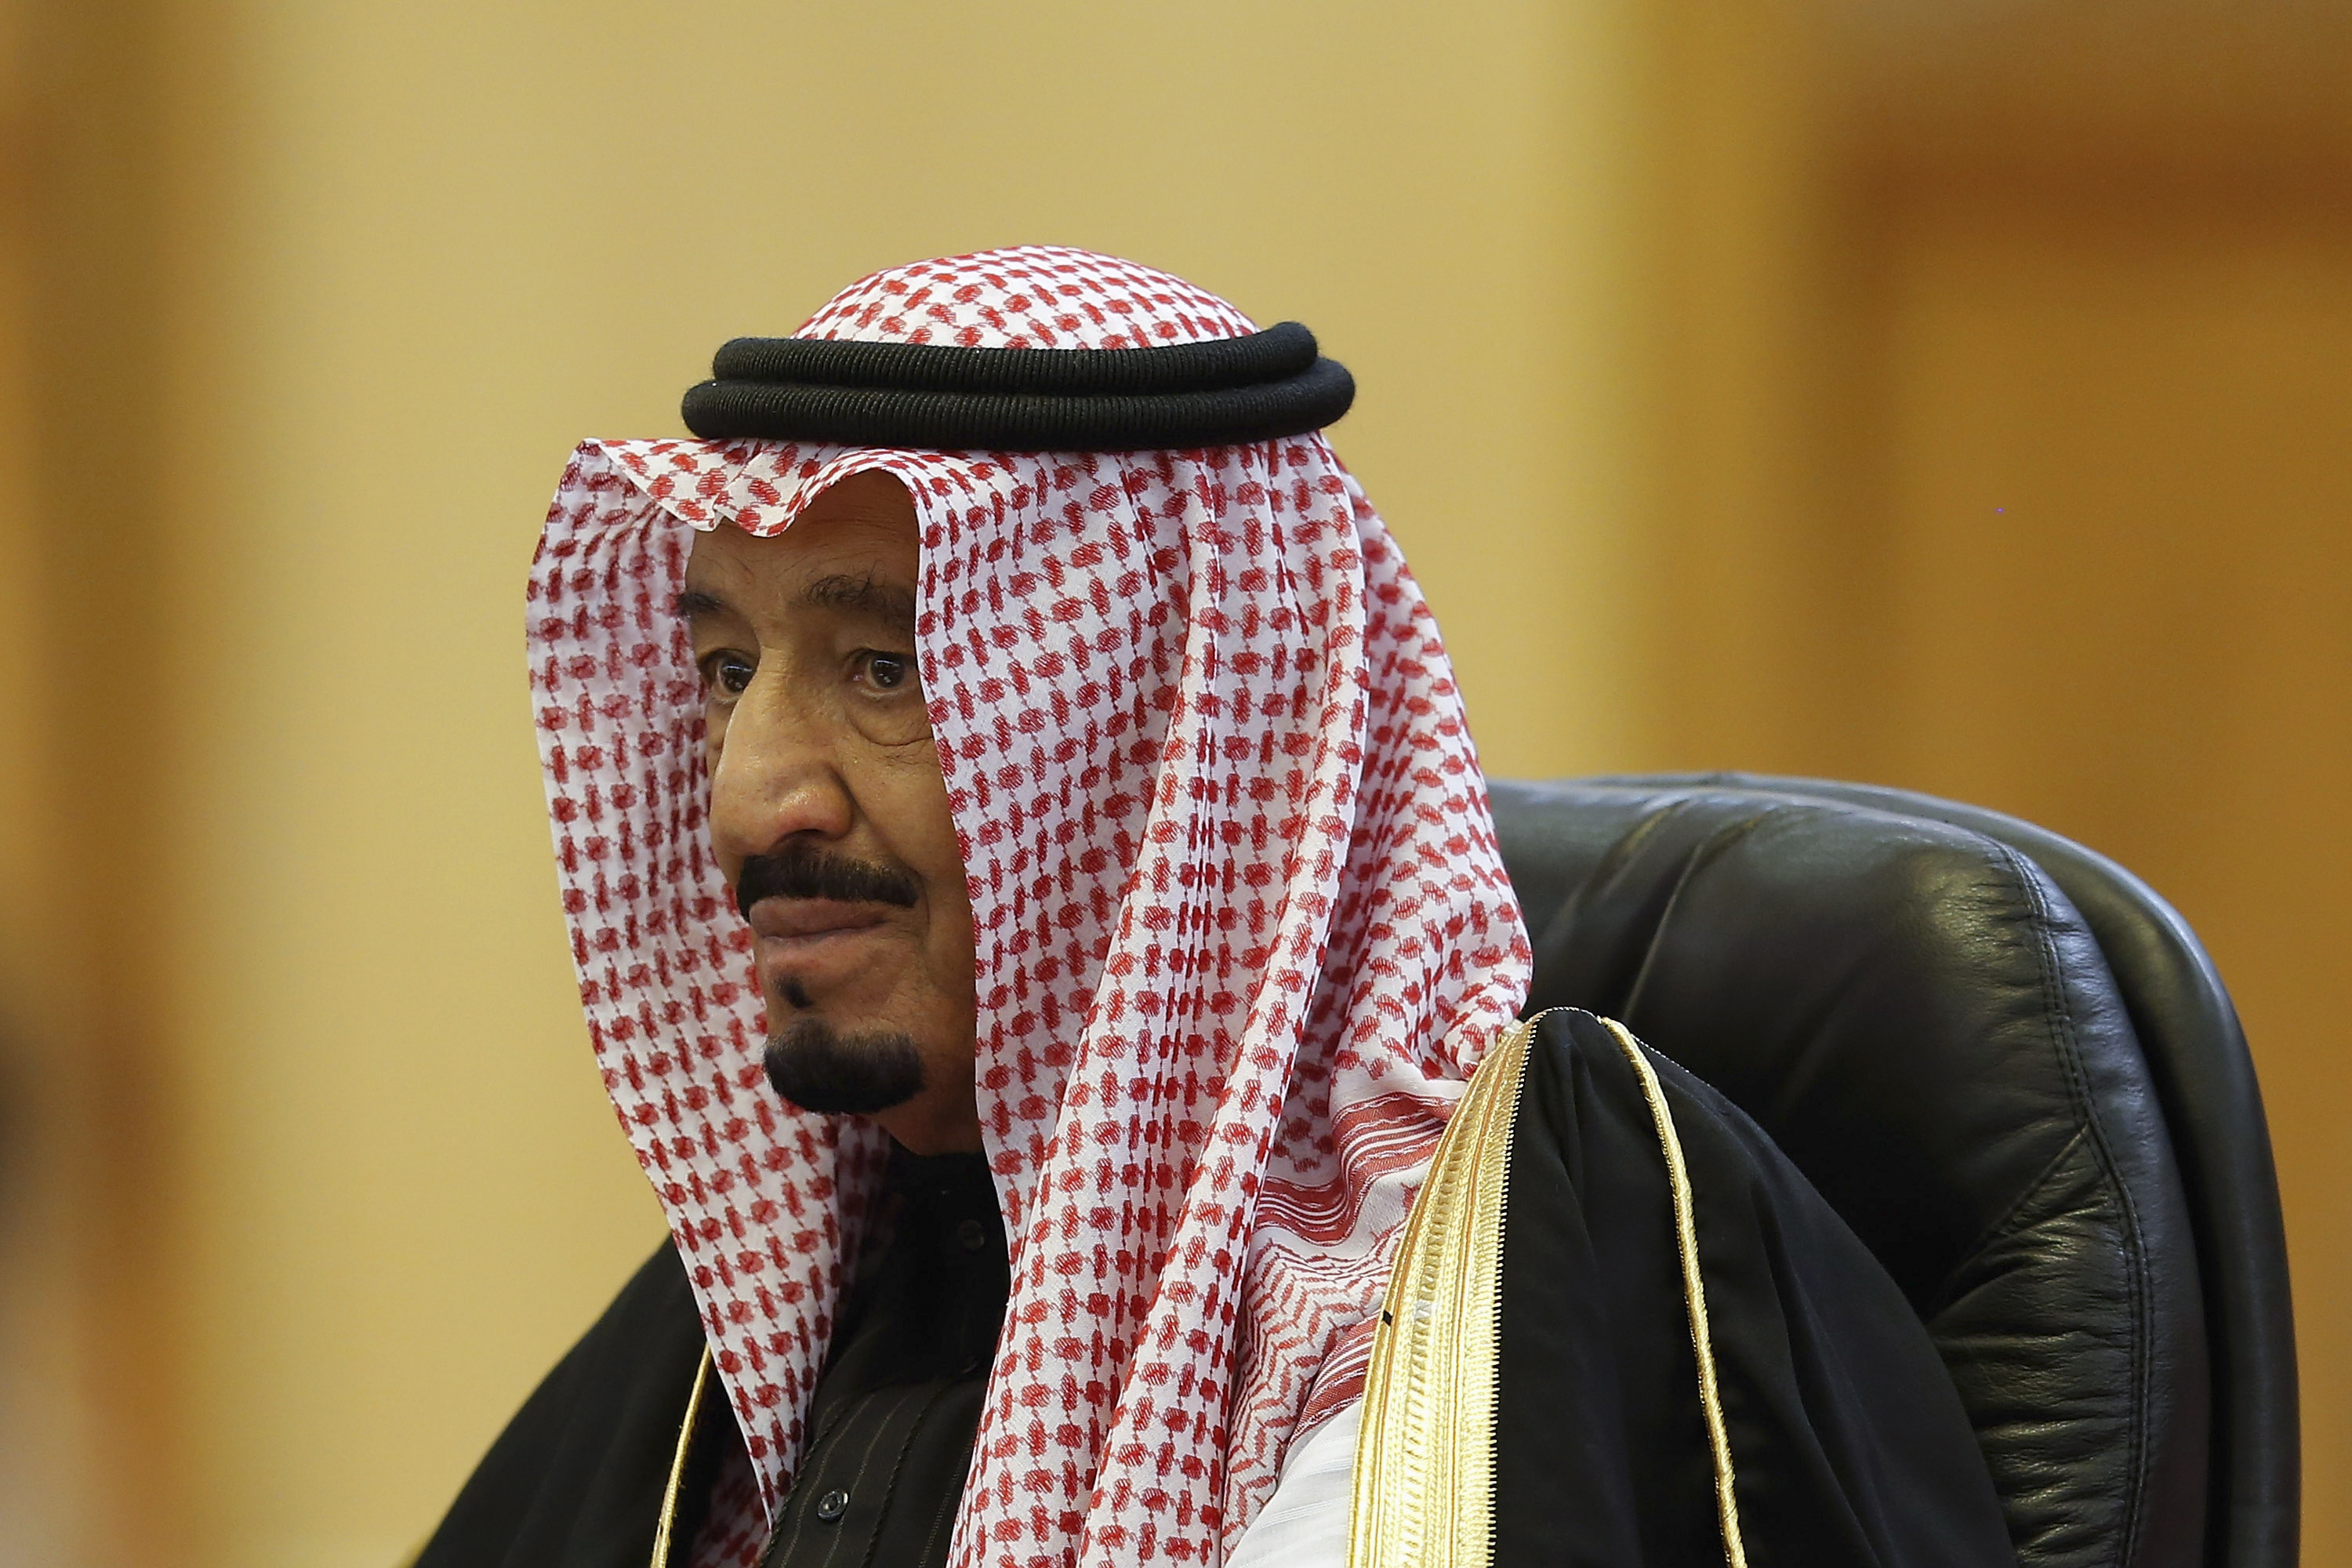 Saudi Arabia's King Salman looks on during a meeting at the Great Hall of the People in Beijing on March 13, 2014